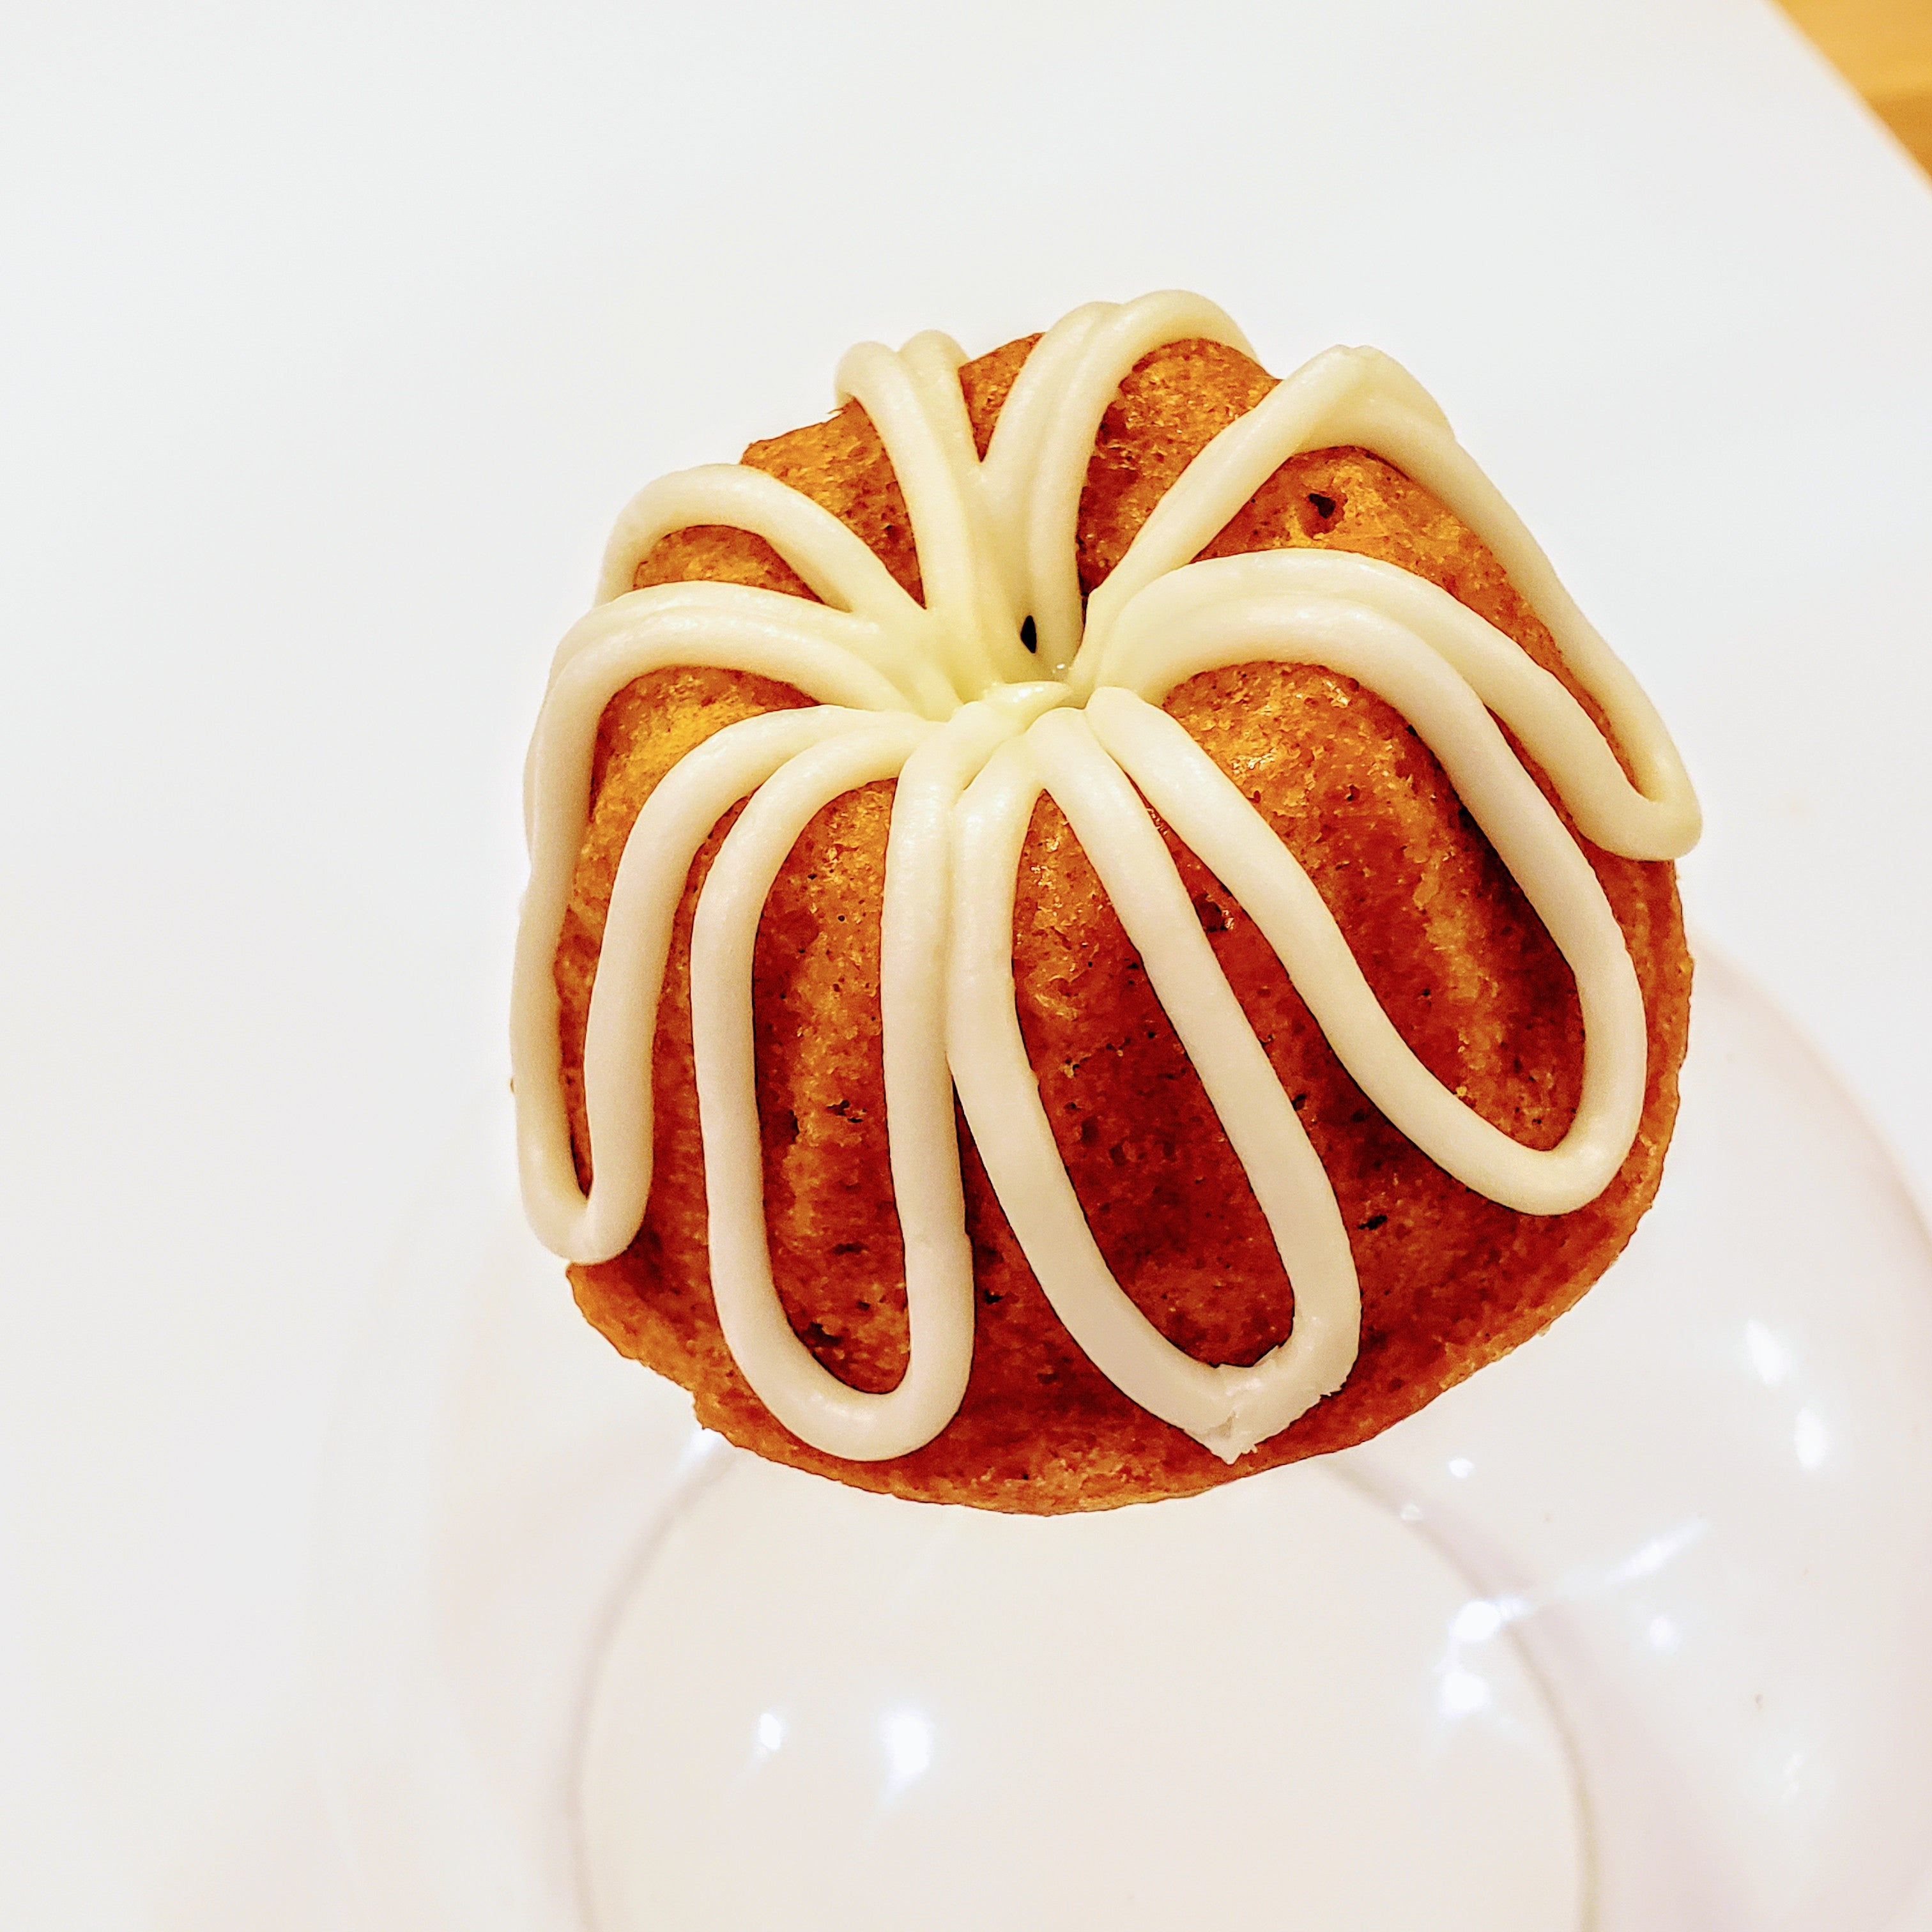 Punkin' Spice Baby Bundt with Cream Cheese Buttercream Drizzle